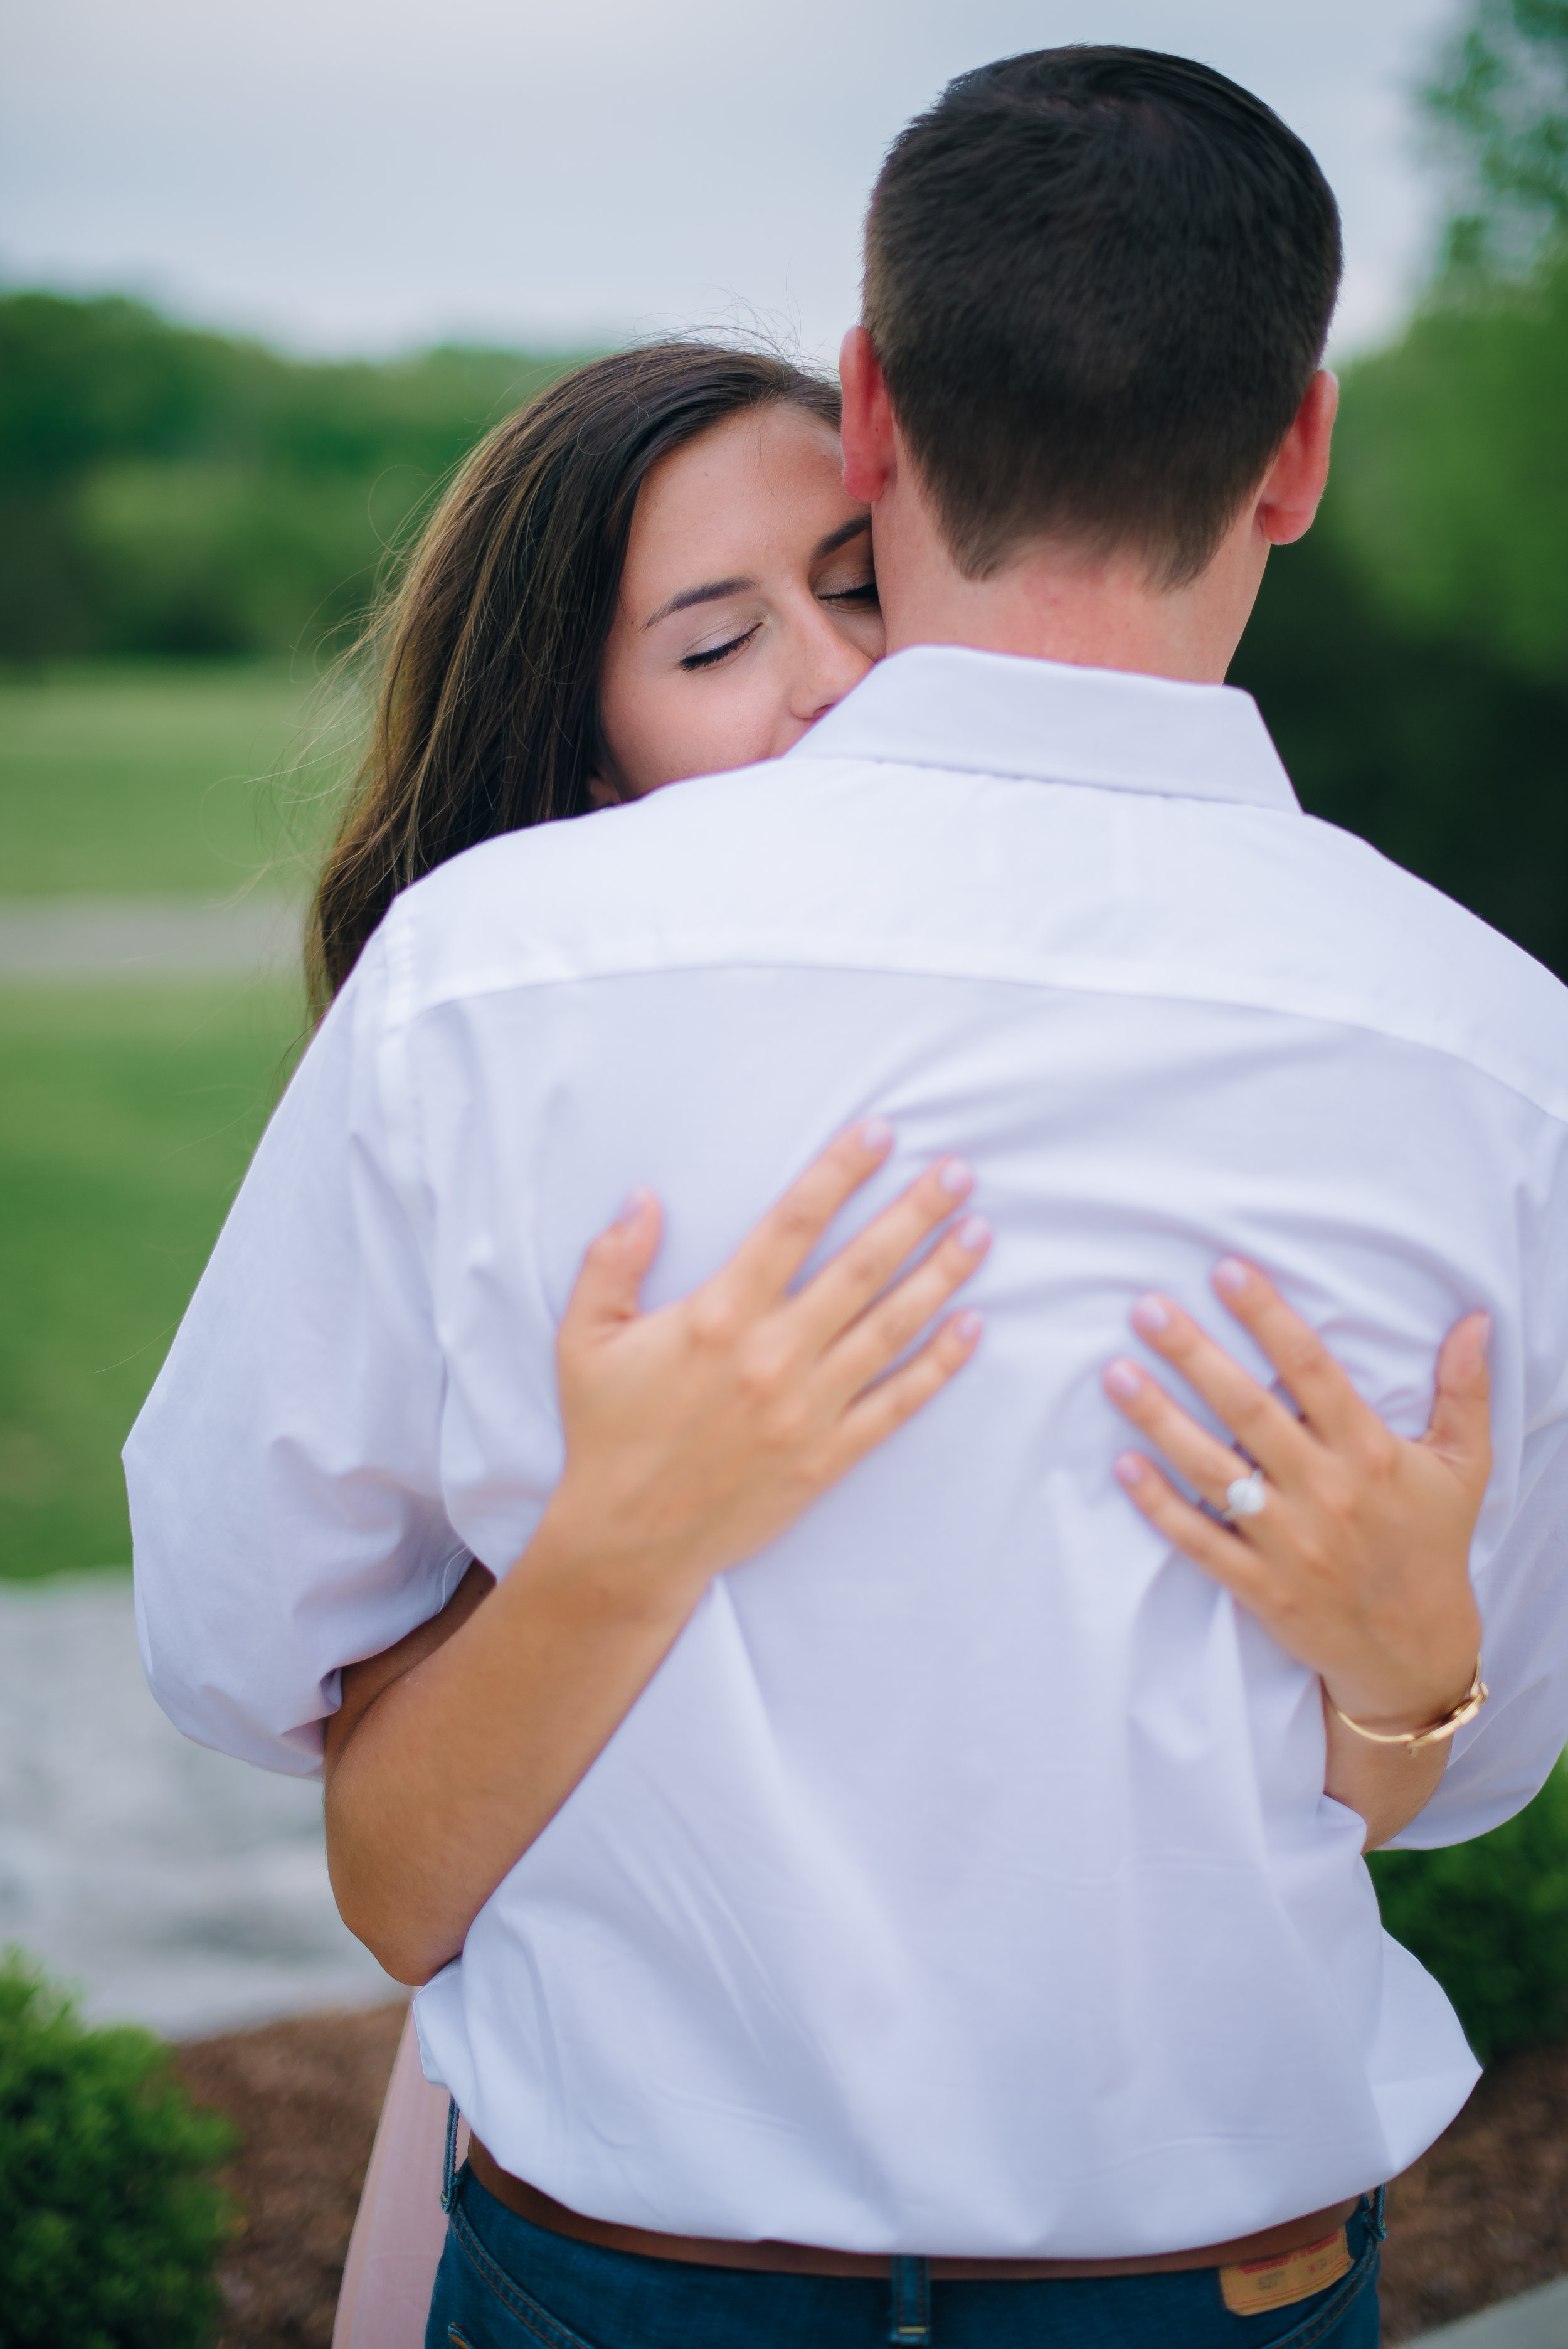 Courtney + Jake Engagement Photos Graystone Quarry - Nashville Wedding Photographer